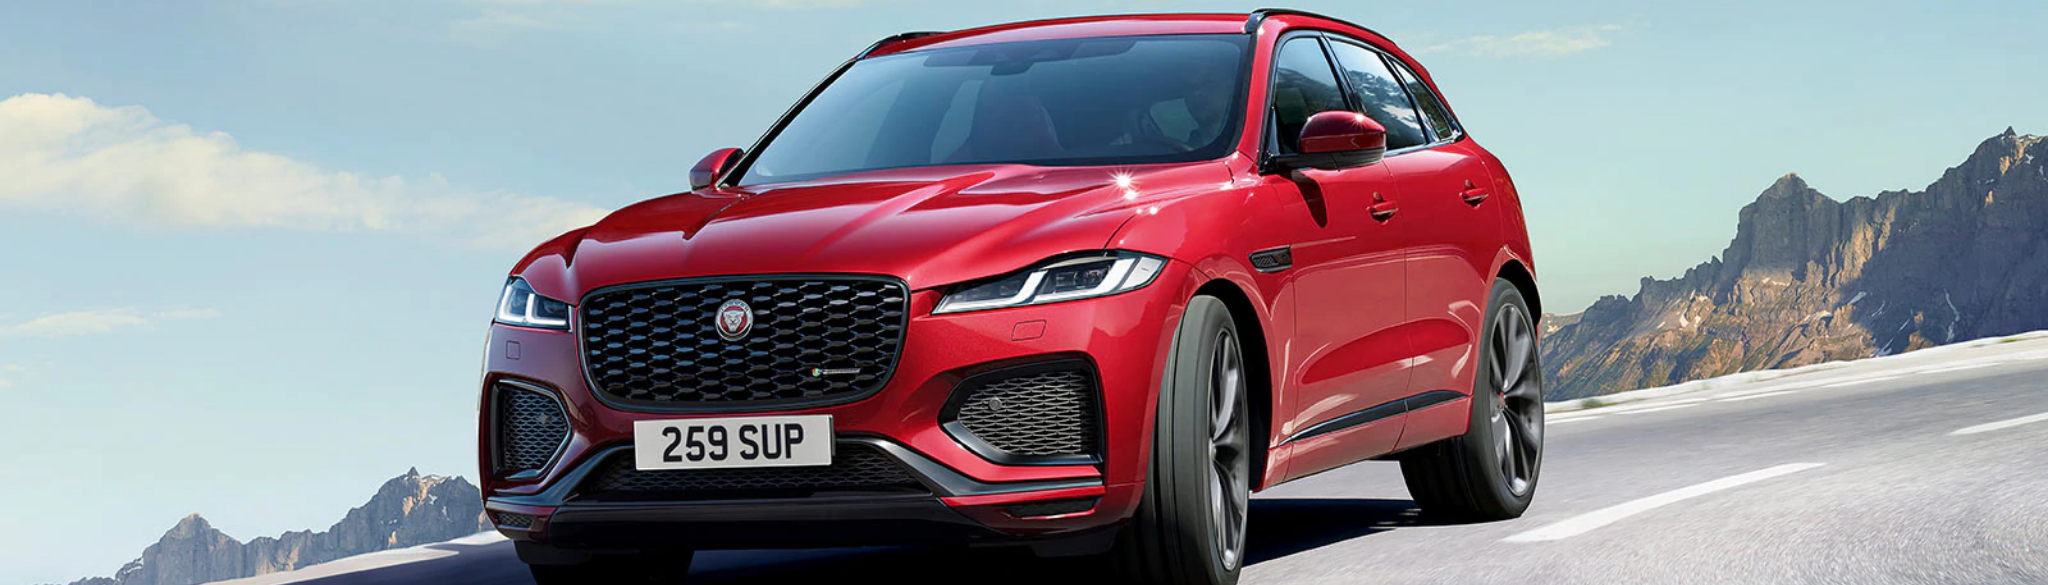 New Jaguar F PACE SUV H